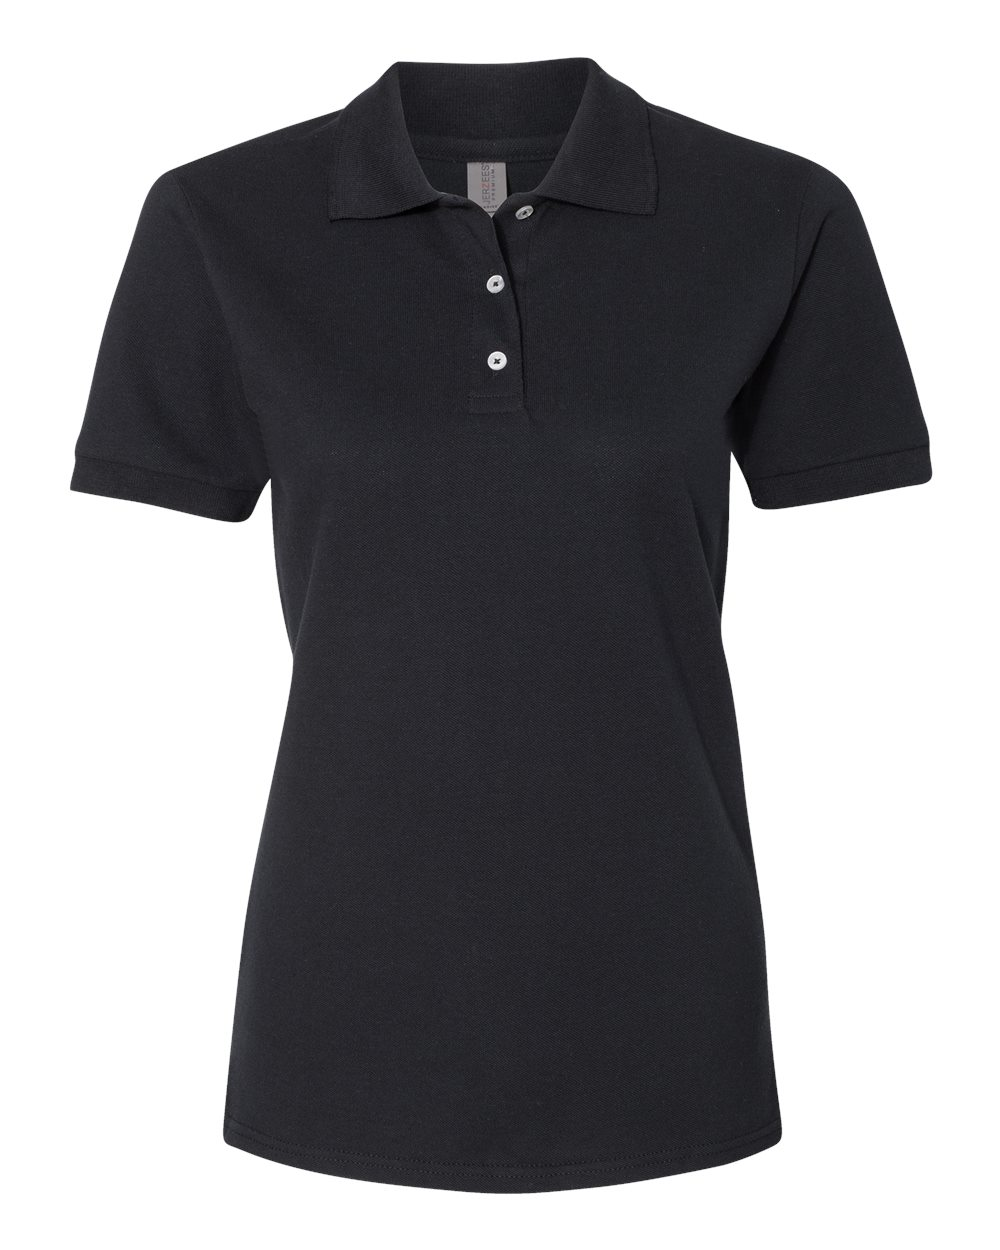 Jerzees-Women-039-s-Easy-Care-Double-Mesh-Ringspun-Pique-Polo-Sport-Shirt-443W thumbnail 9